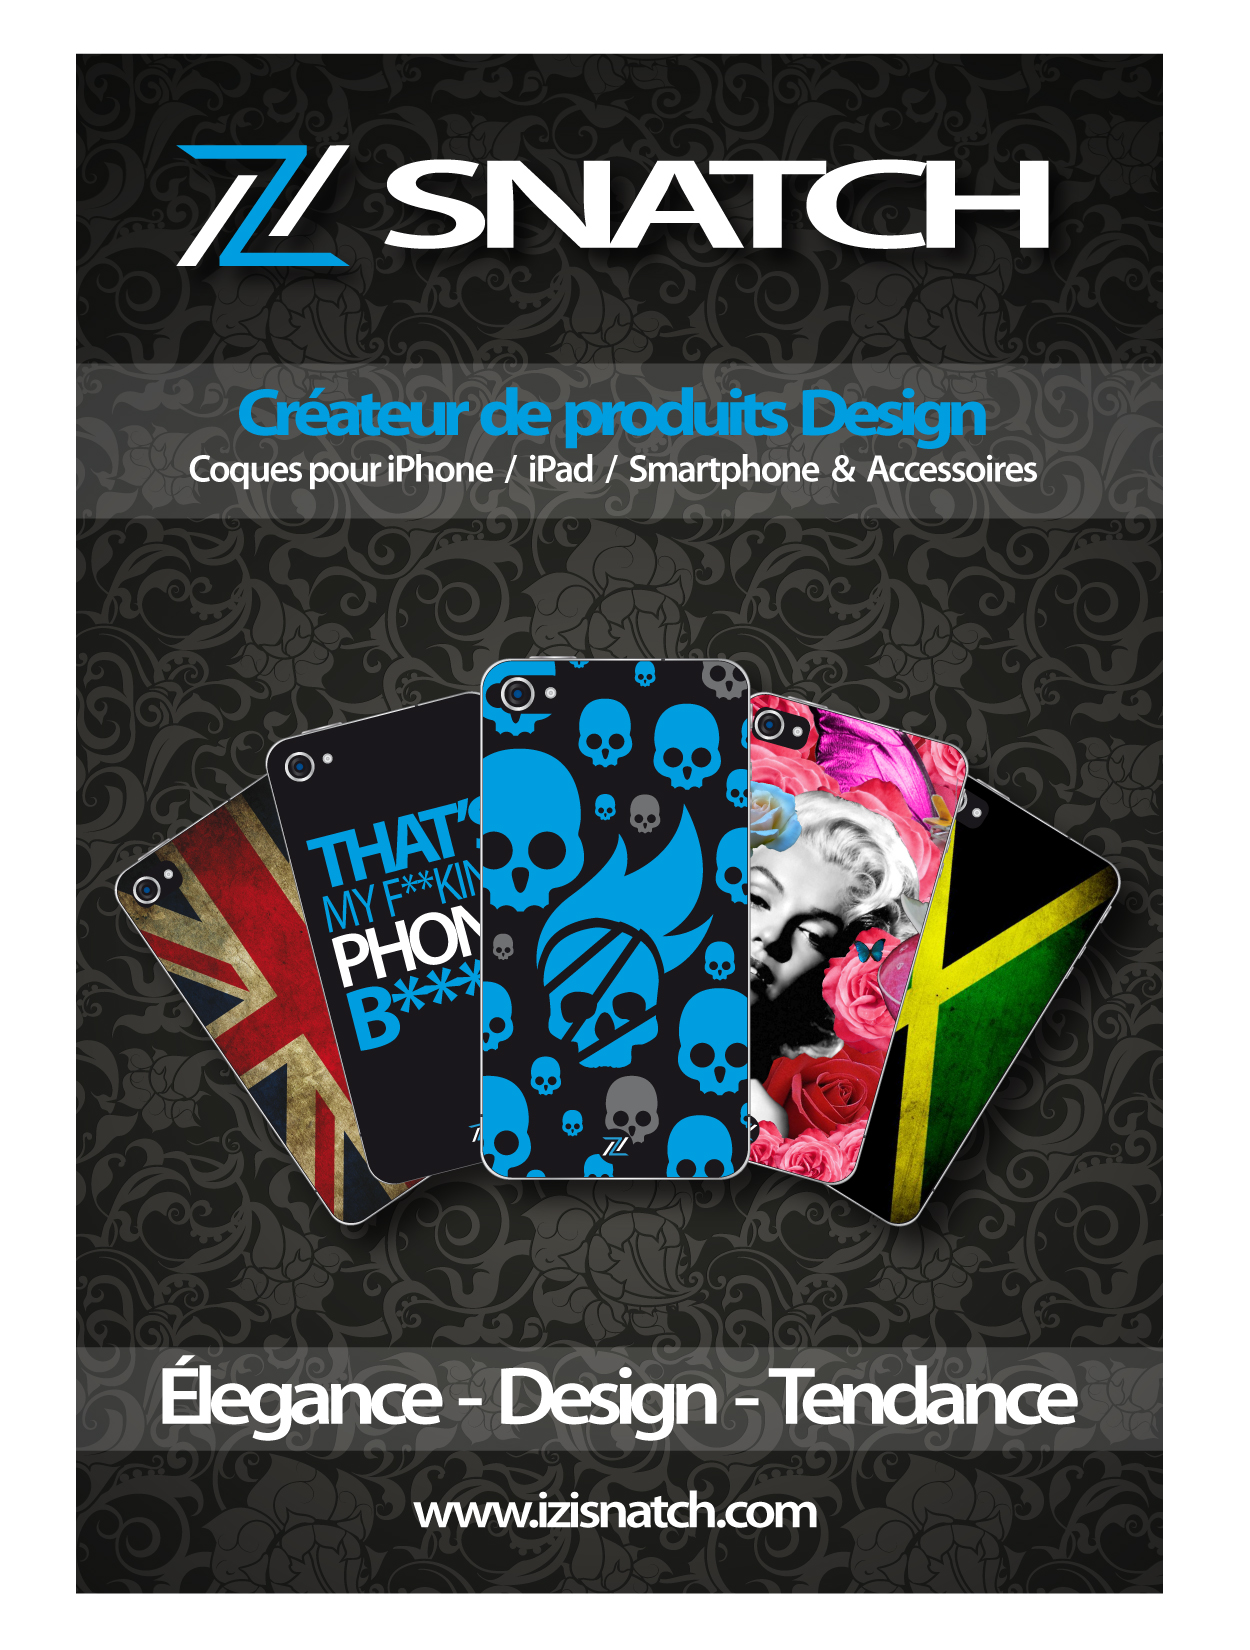 Flyer | IZI SNATCH